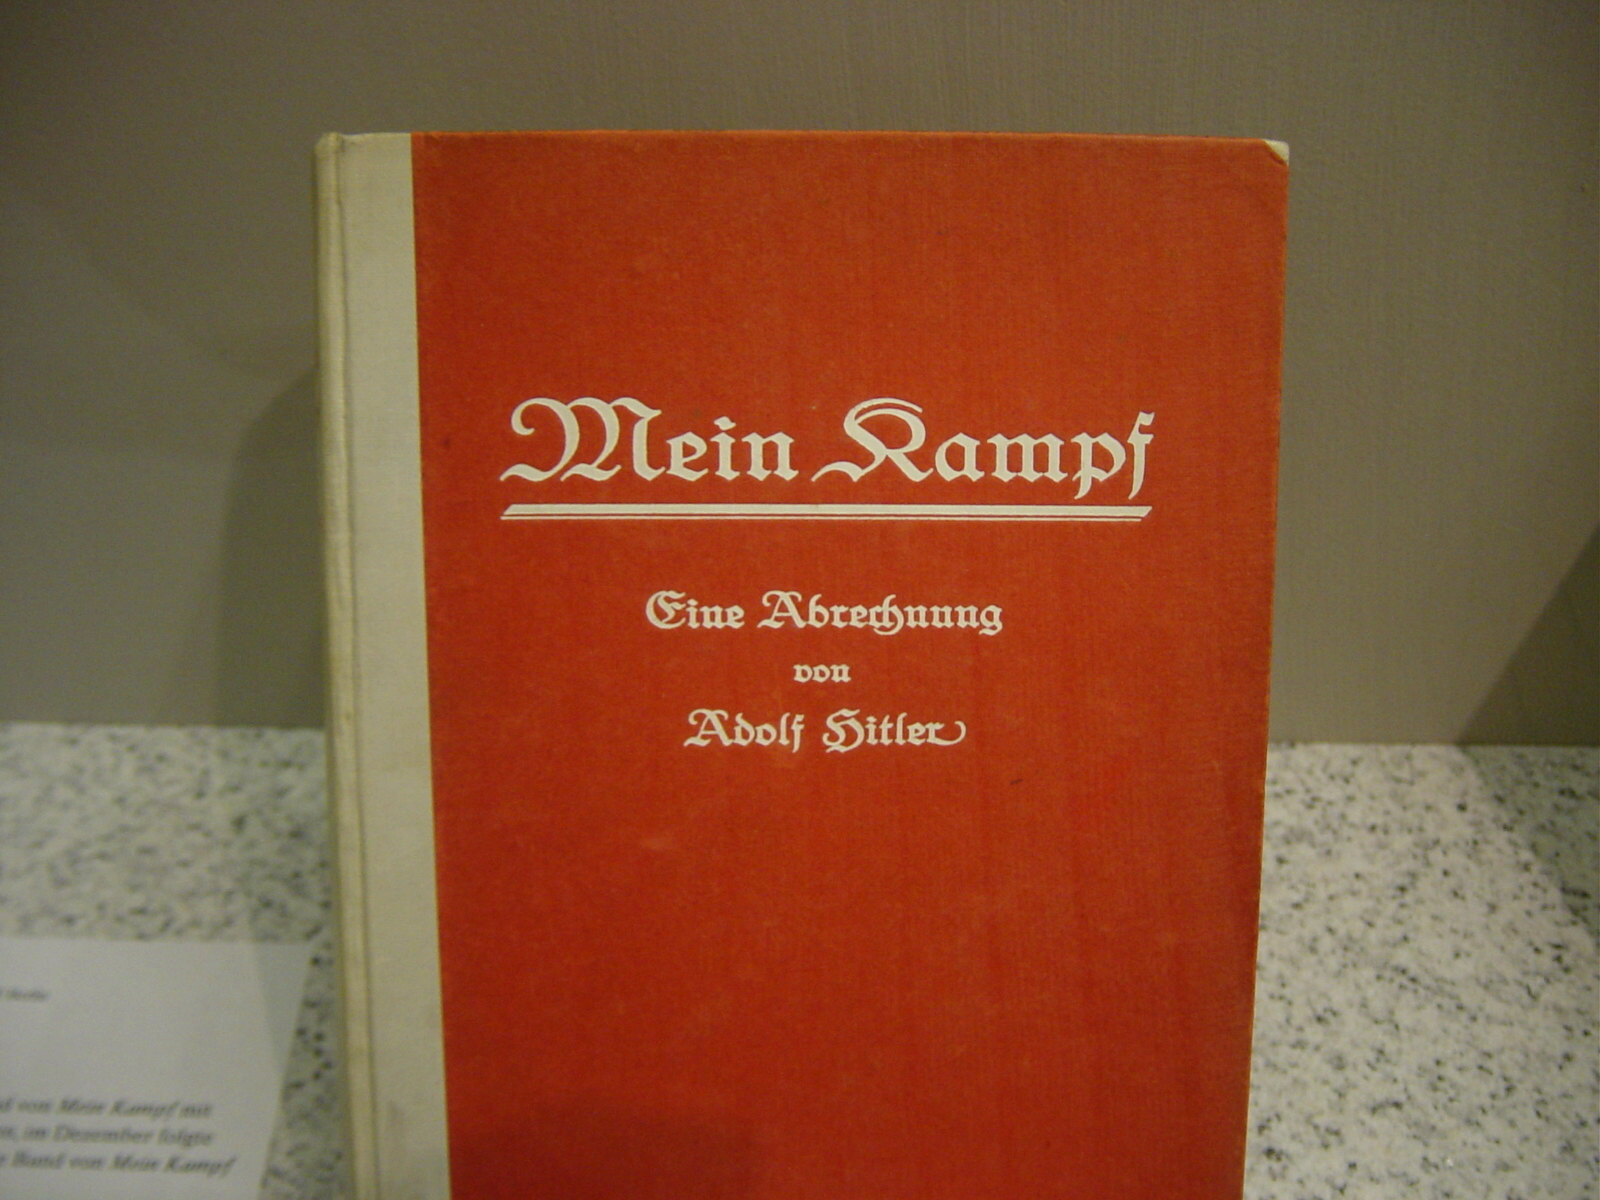 the violent content in mein kampf Mein kampf - ebook written by it was written in hate and it contained a blueprint for violent bloodshed when mein kampf was published in 1925 this content.